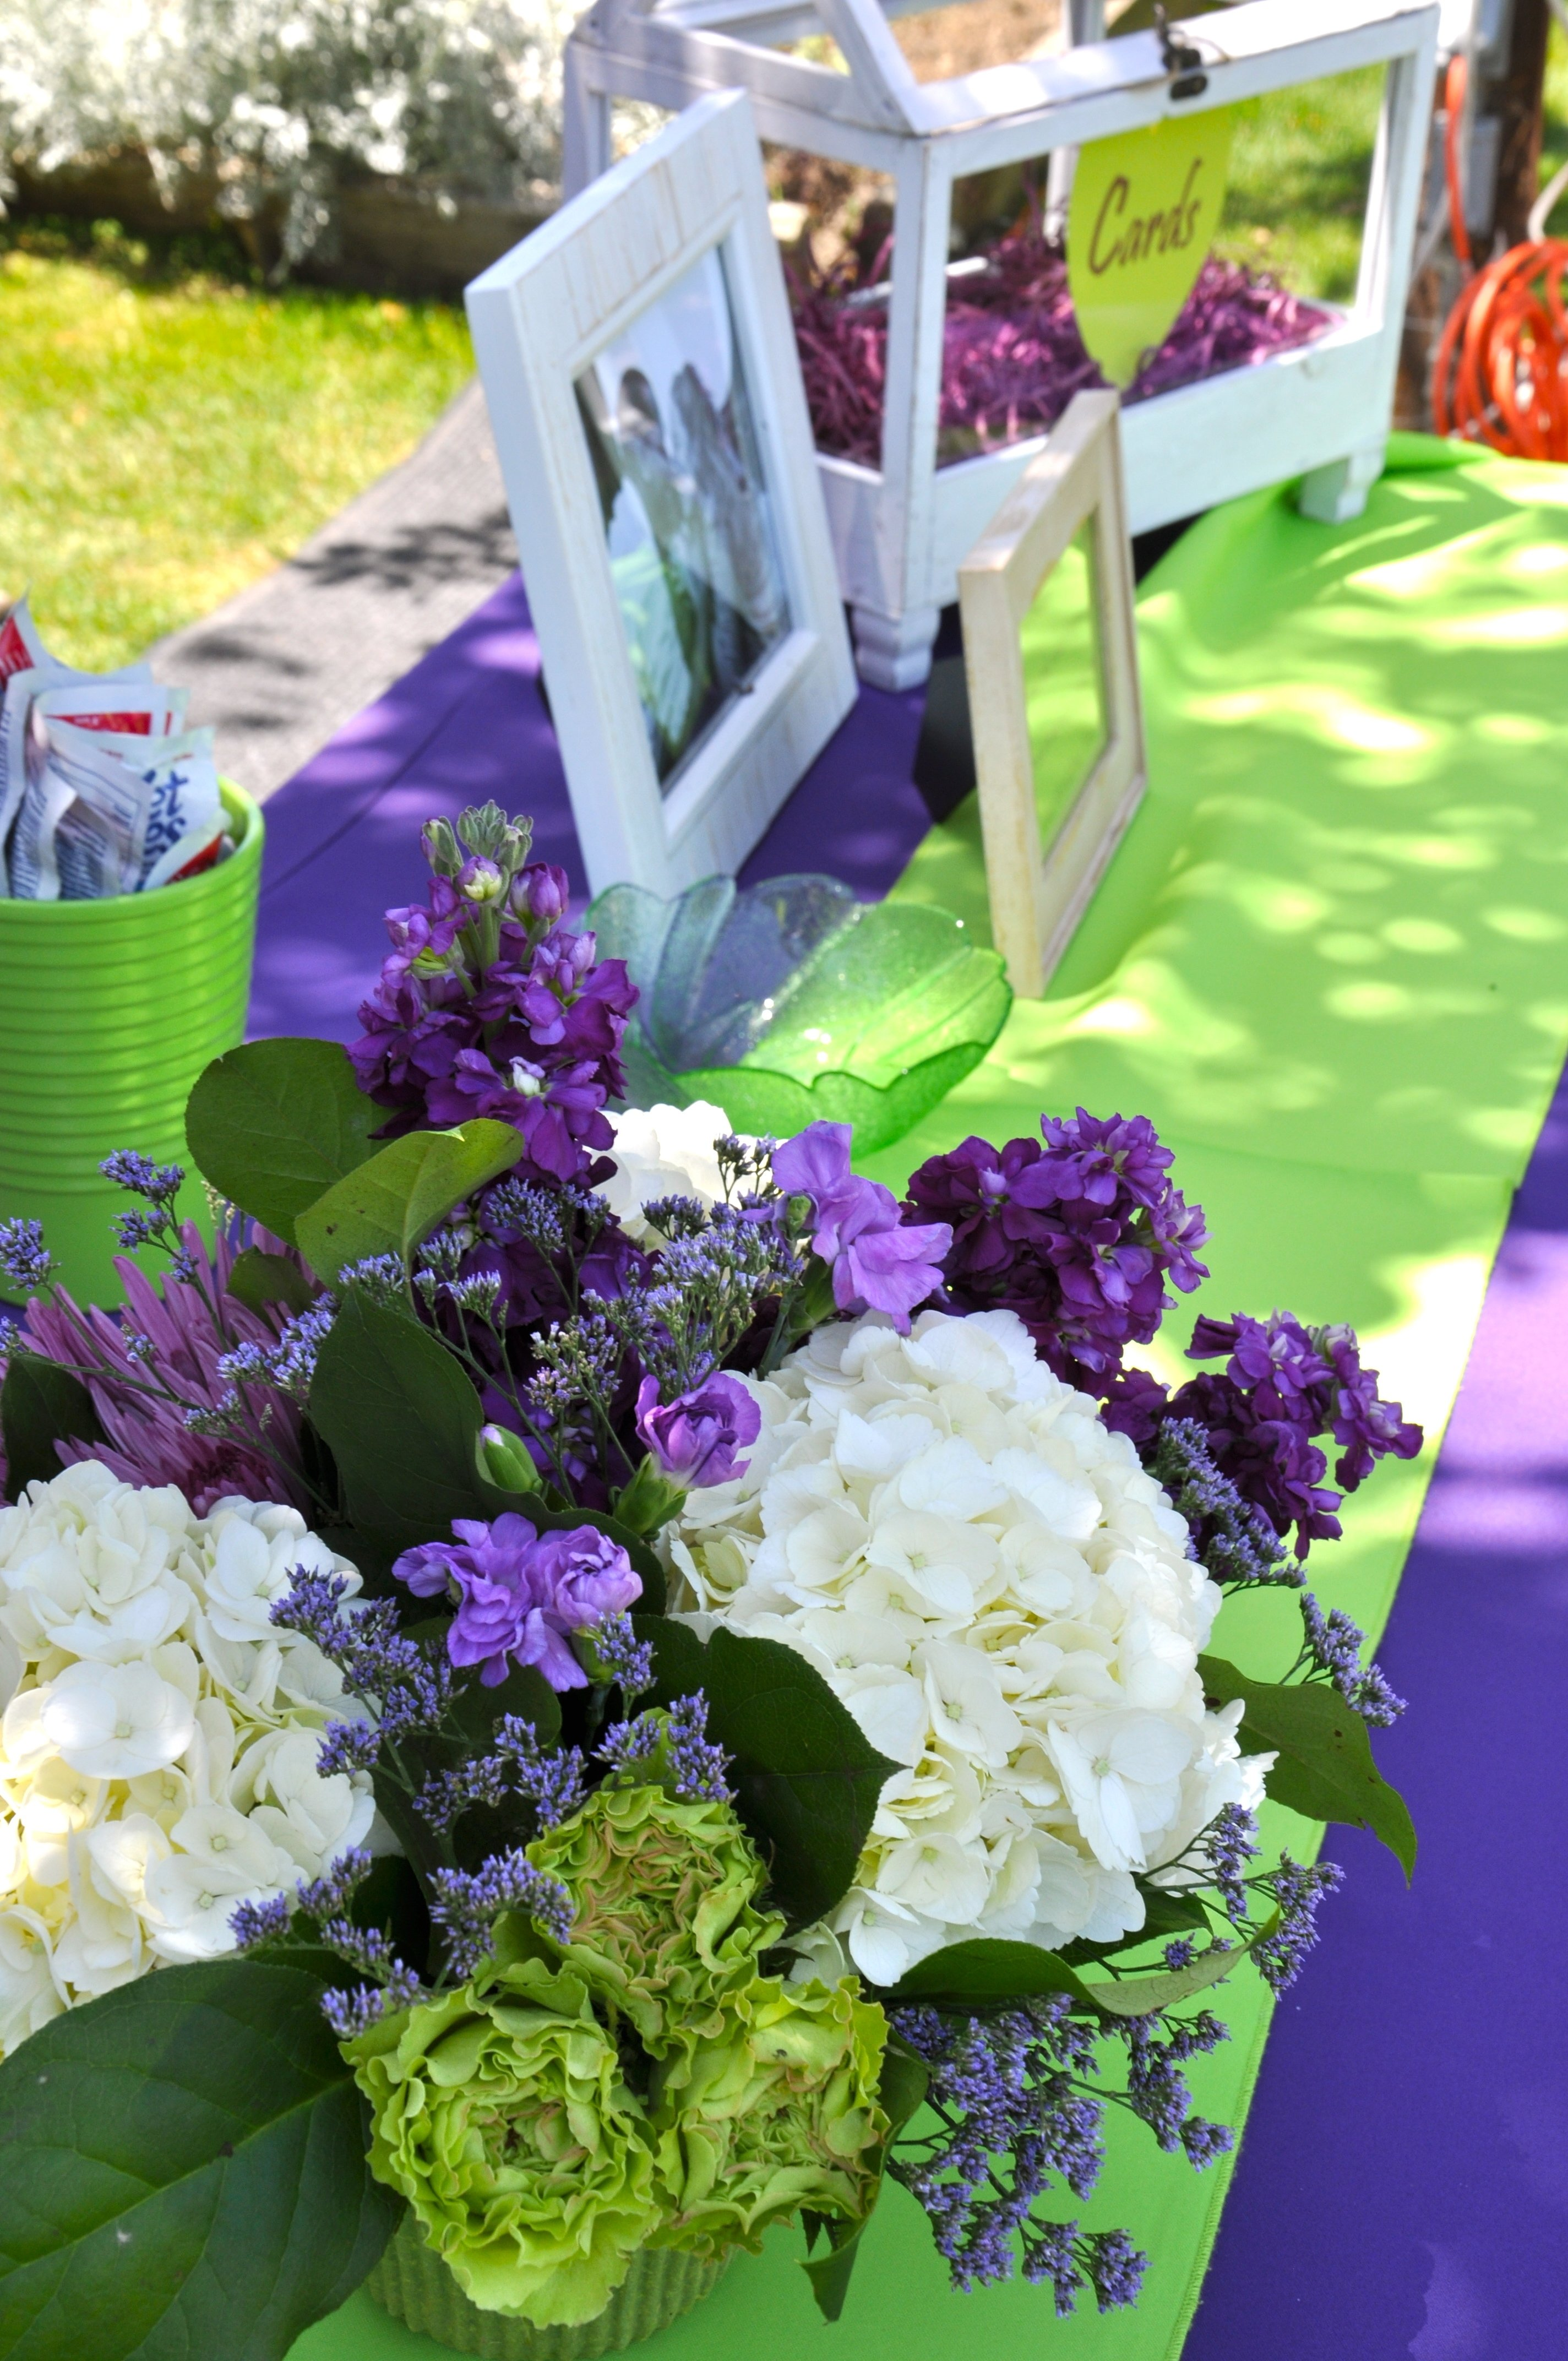 10 Awesome Purple And Green Wedding Ideas purple and green wedding decoration ideas images wedding 2021